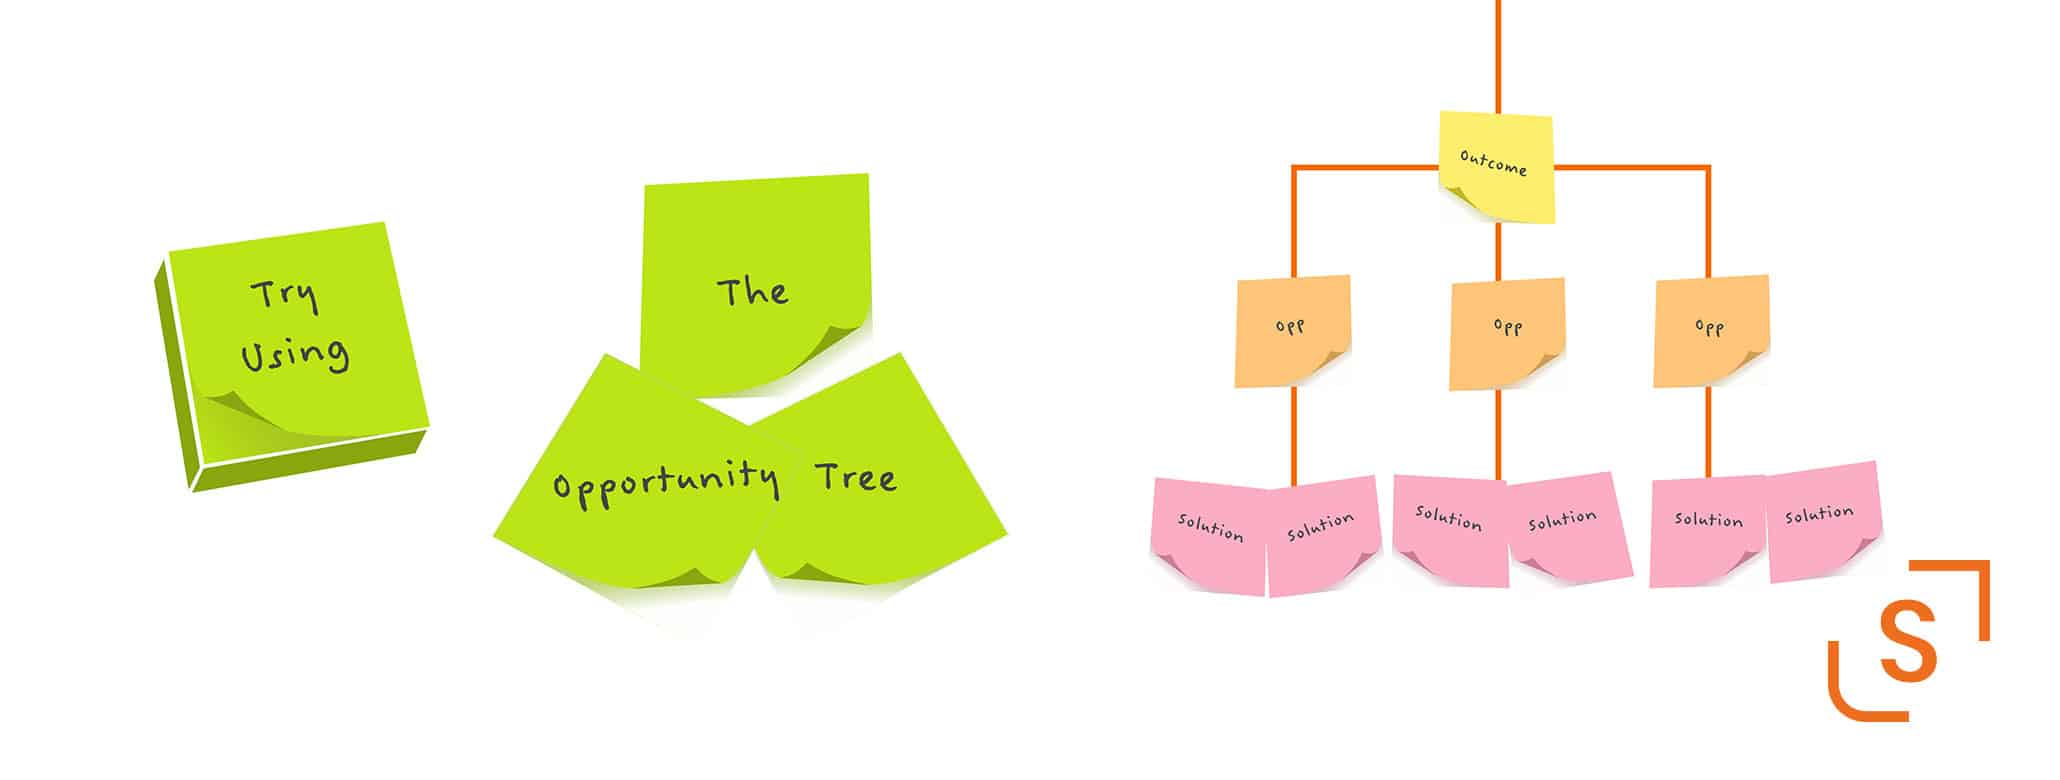 Identifying Solutions with The Opportunity Tree